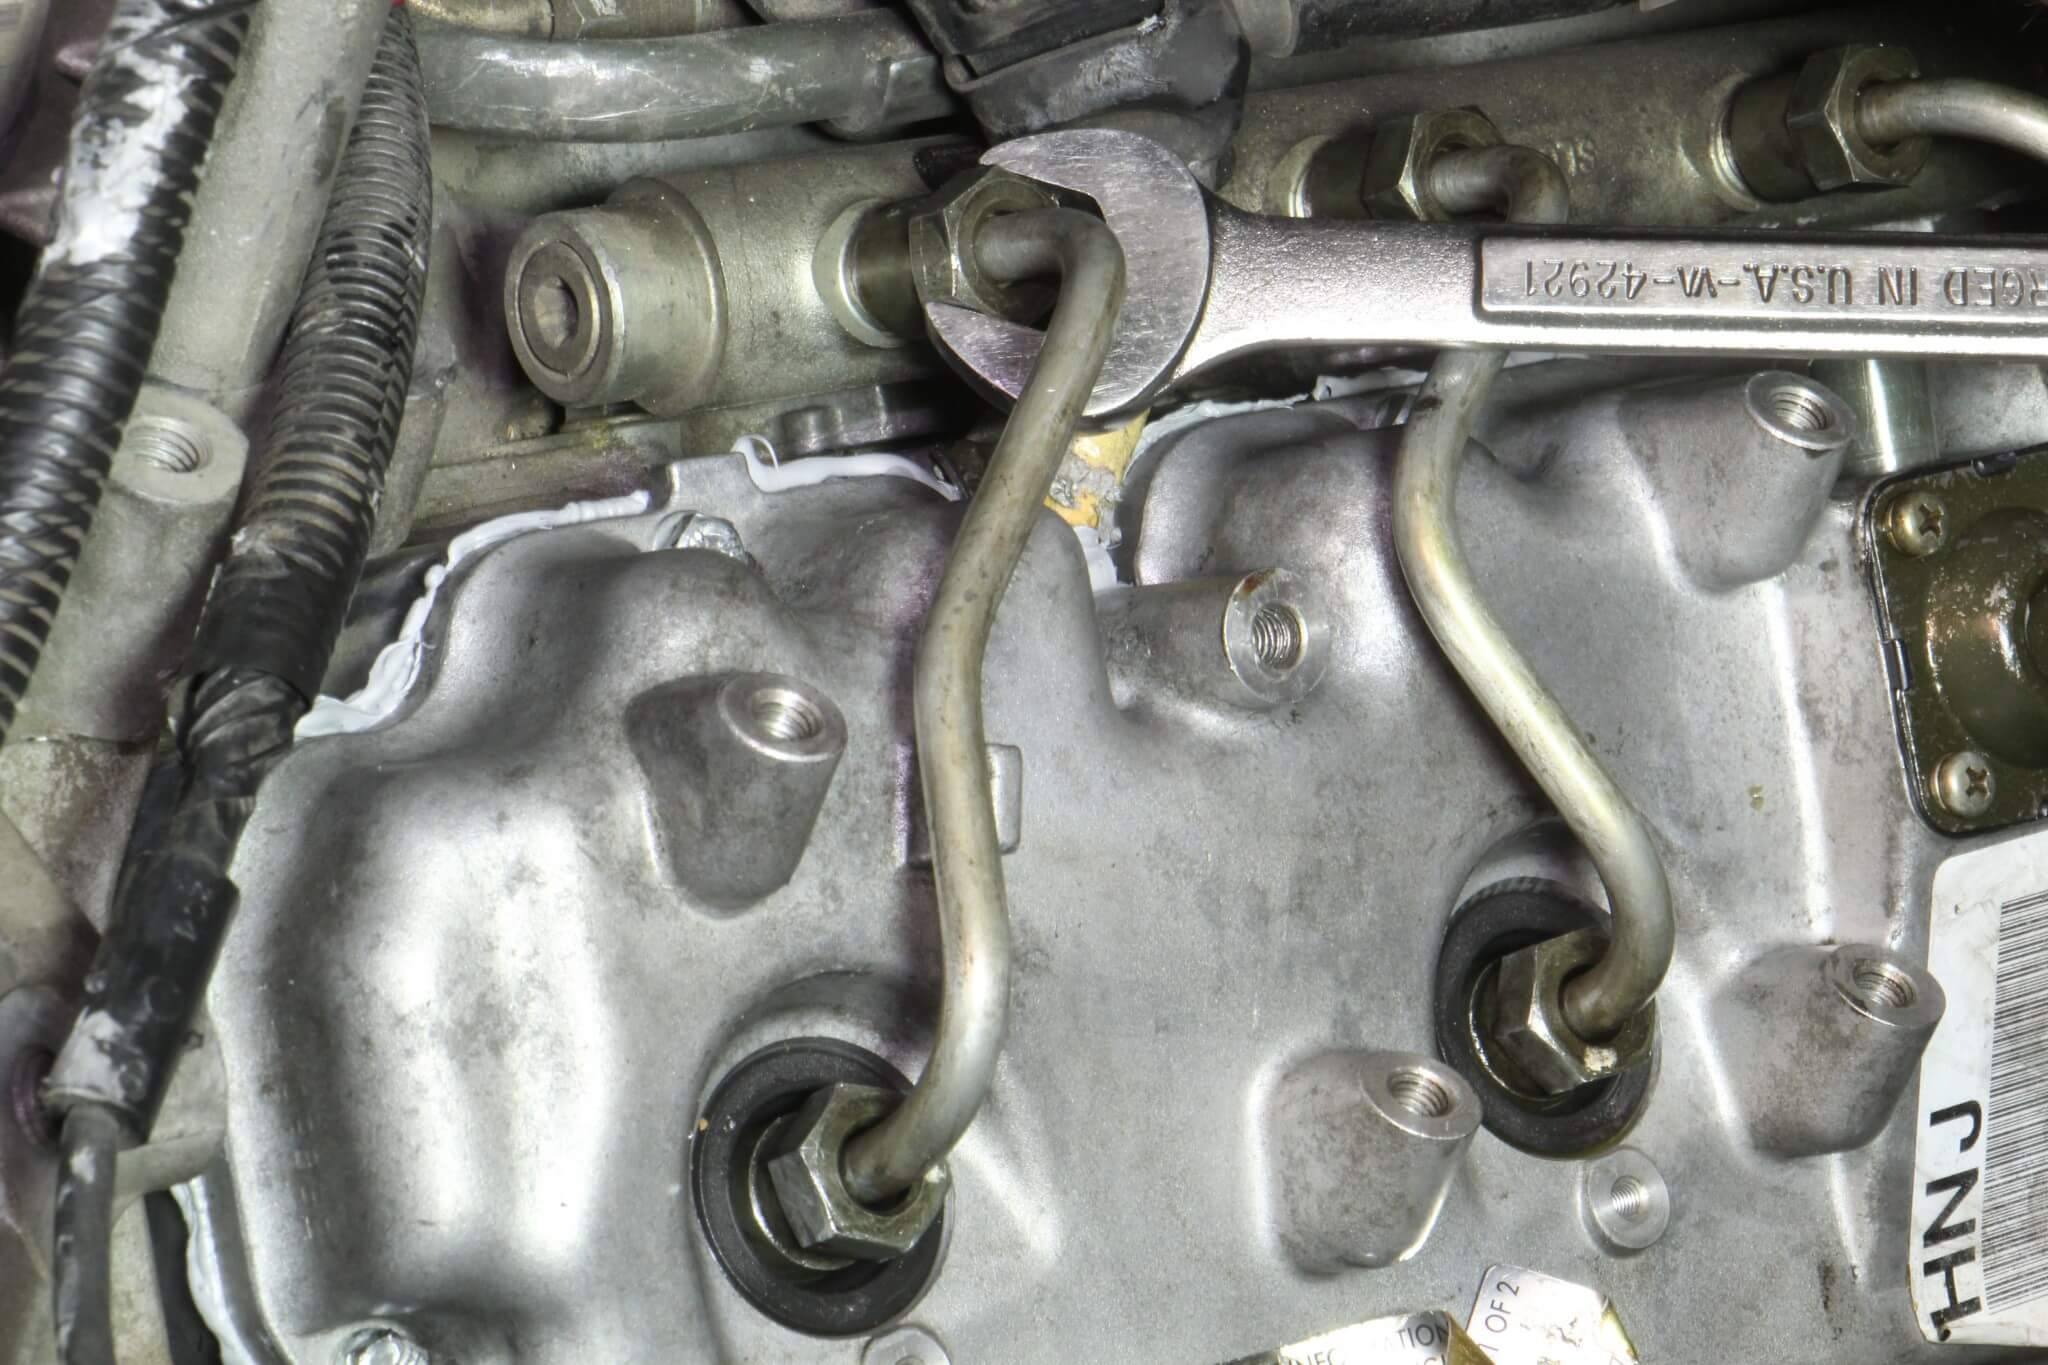 4. A 19mm open wrench was used to loosen the fuel injection lines from the fuel rail and fuel injectors. The upper fitting on the line is done first.